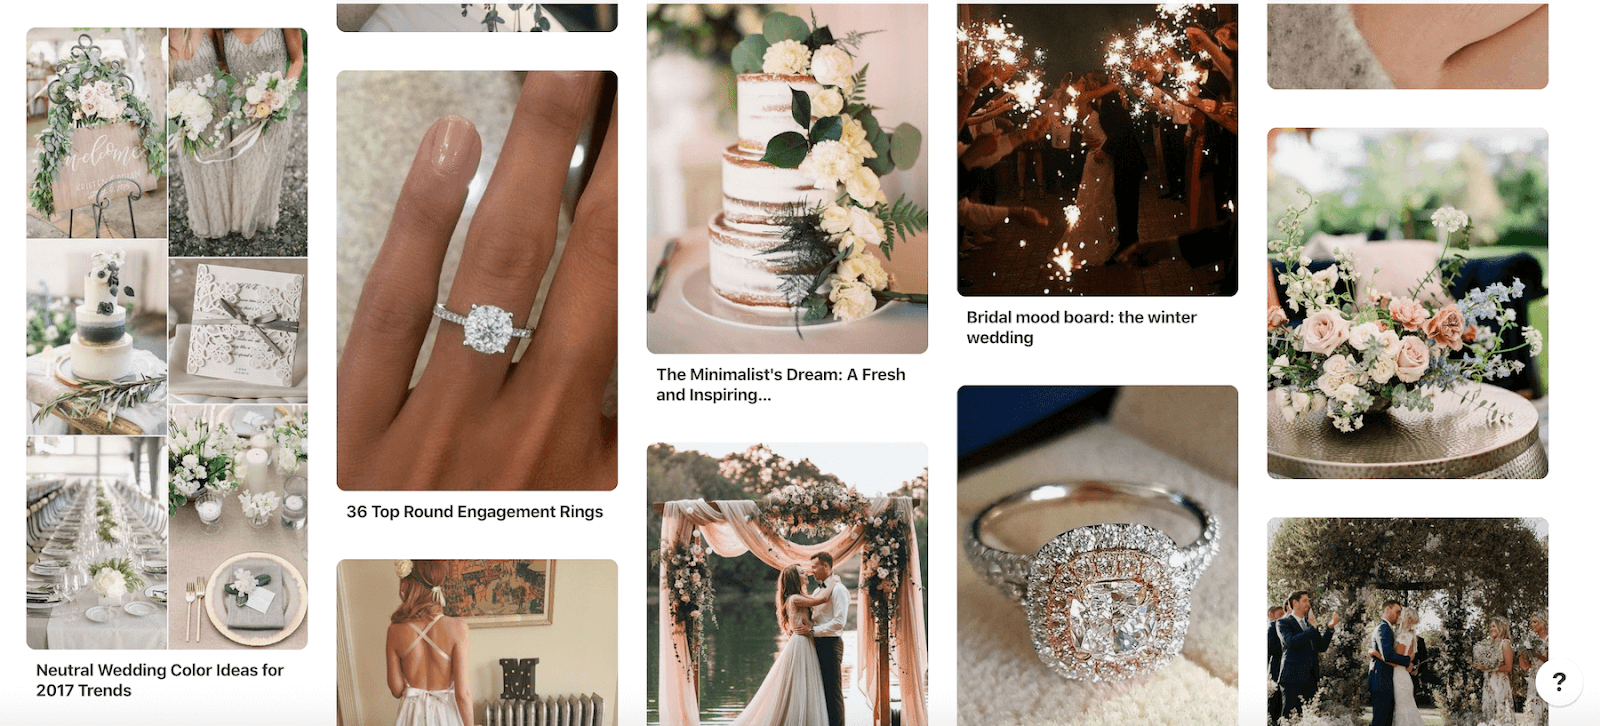 pittsburgh engagement pinterest